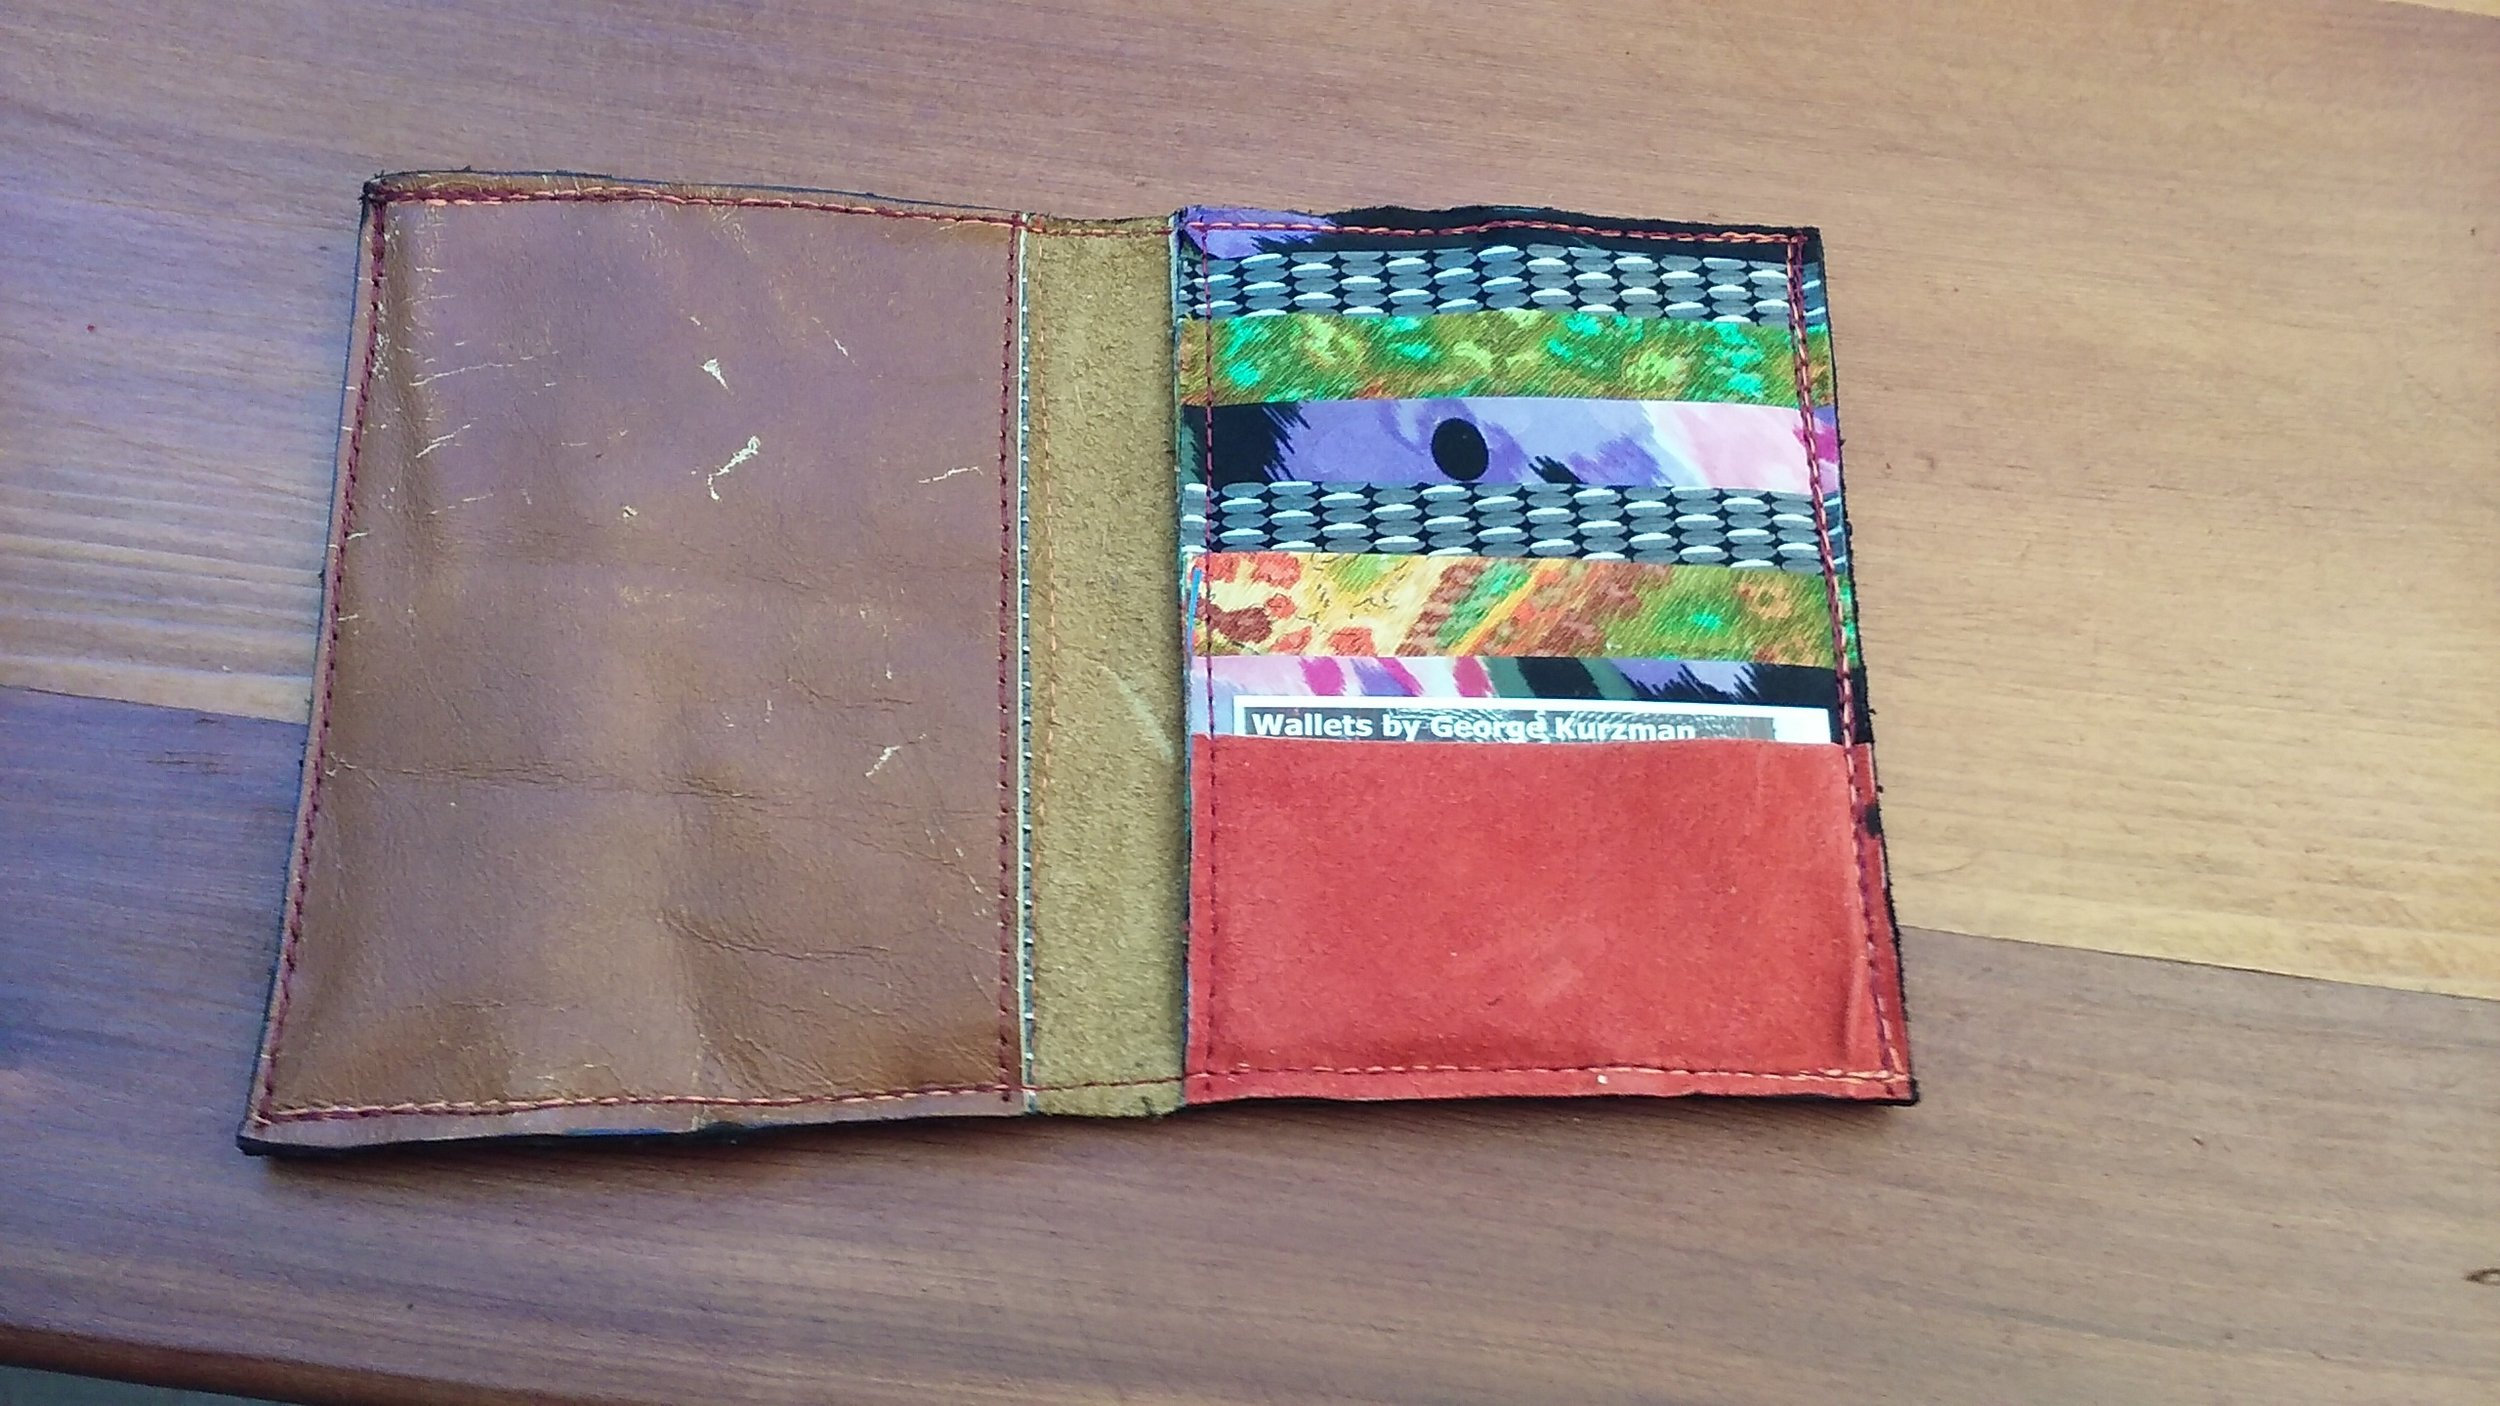 phone pocket on the left, cards on the right